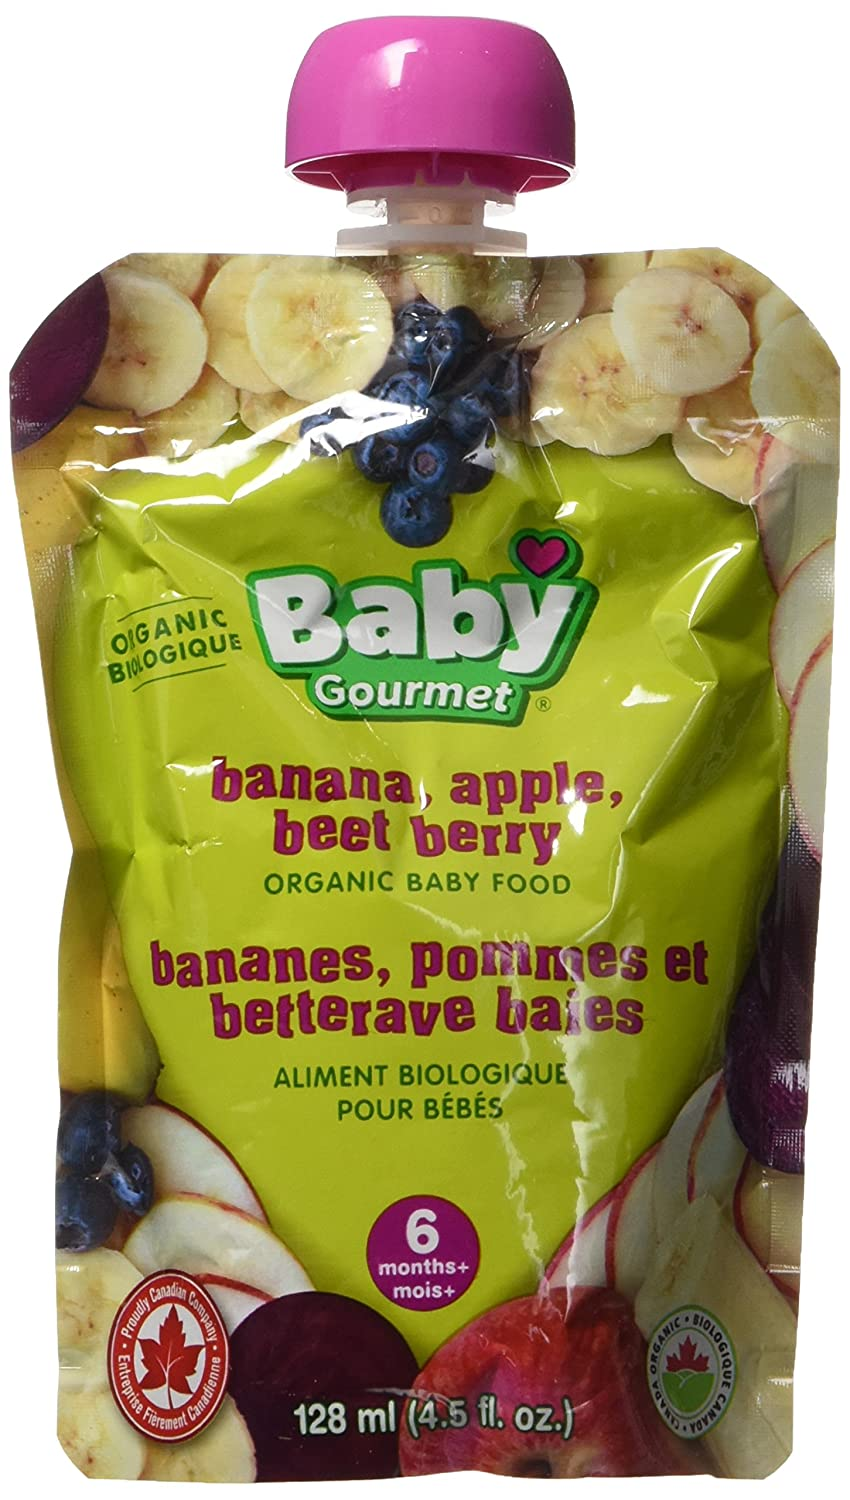 Baby Gourmet Banana Apple Beet Berry, 12 Count Baby Gourmet Foods Inc BABB4BGCSCD0012